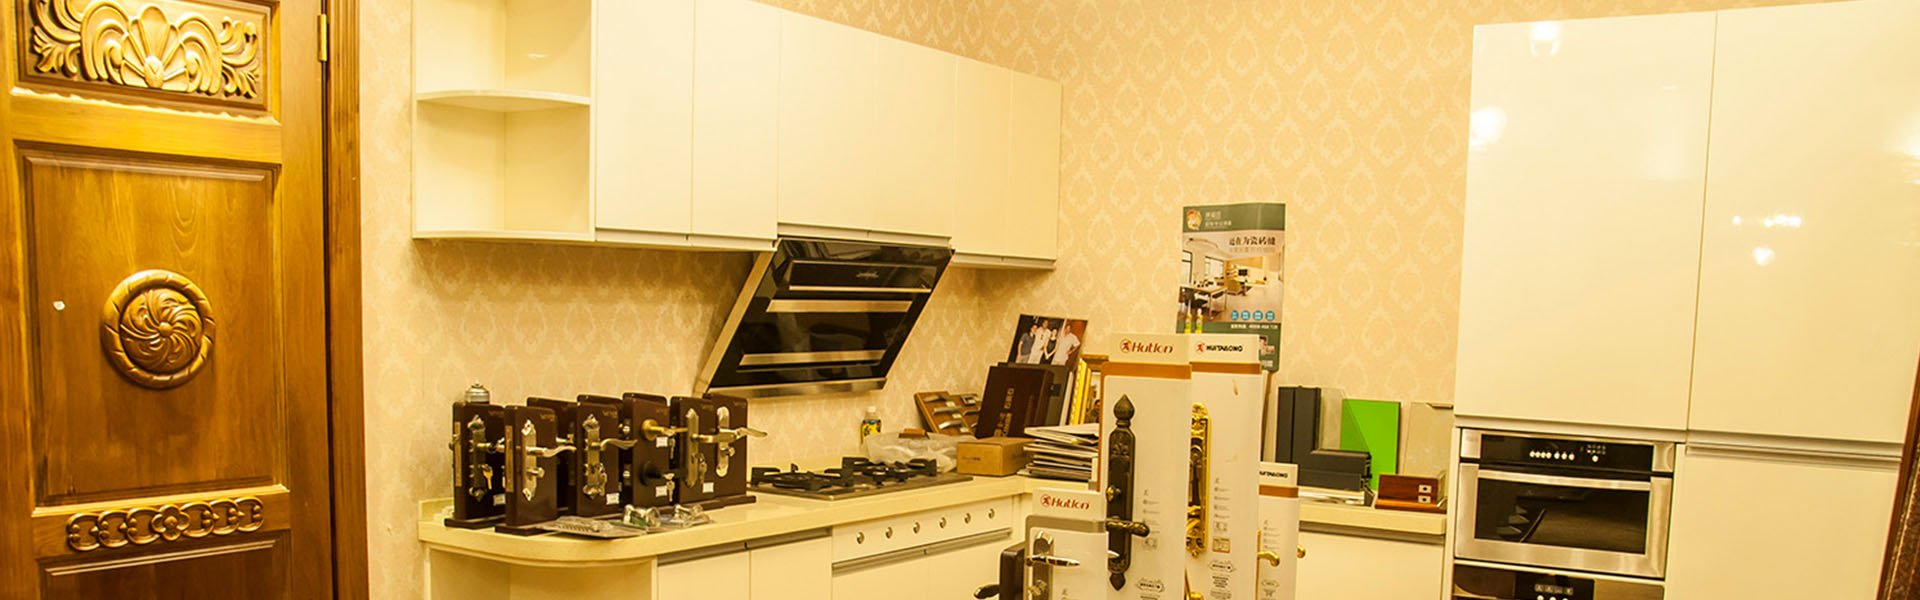 Solid wood kitchen cabinets-Desheng Wood Industry